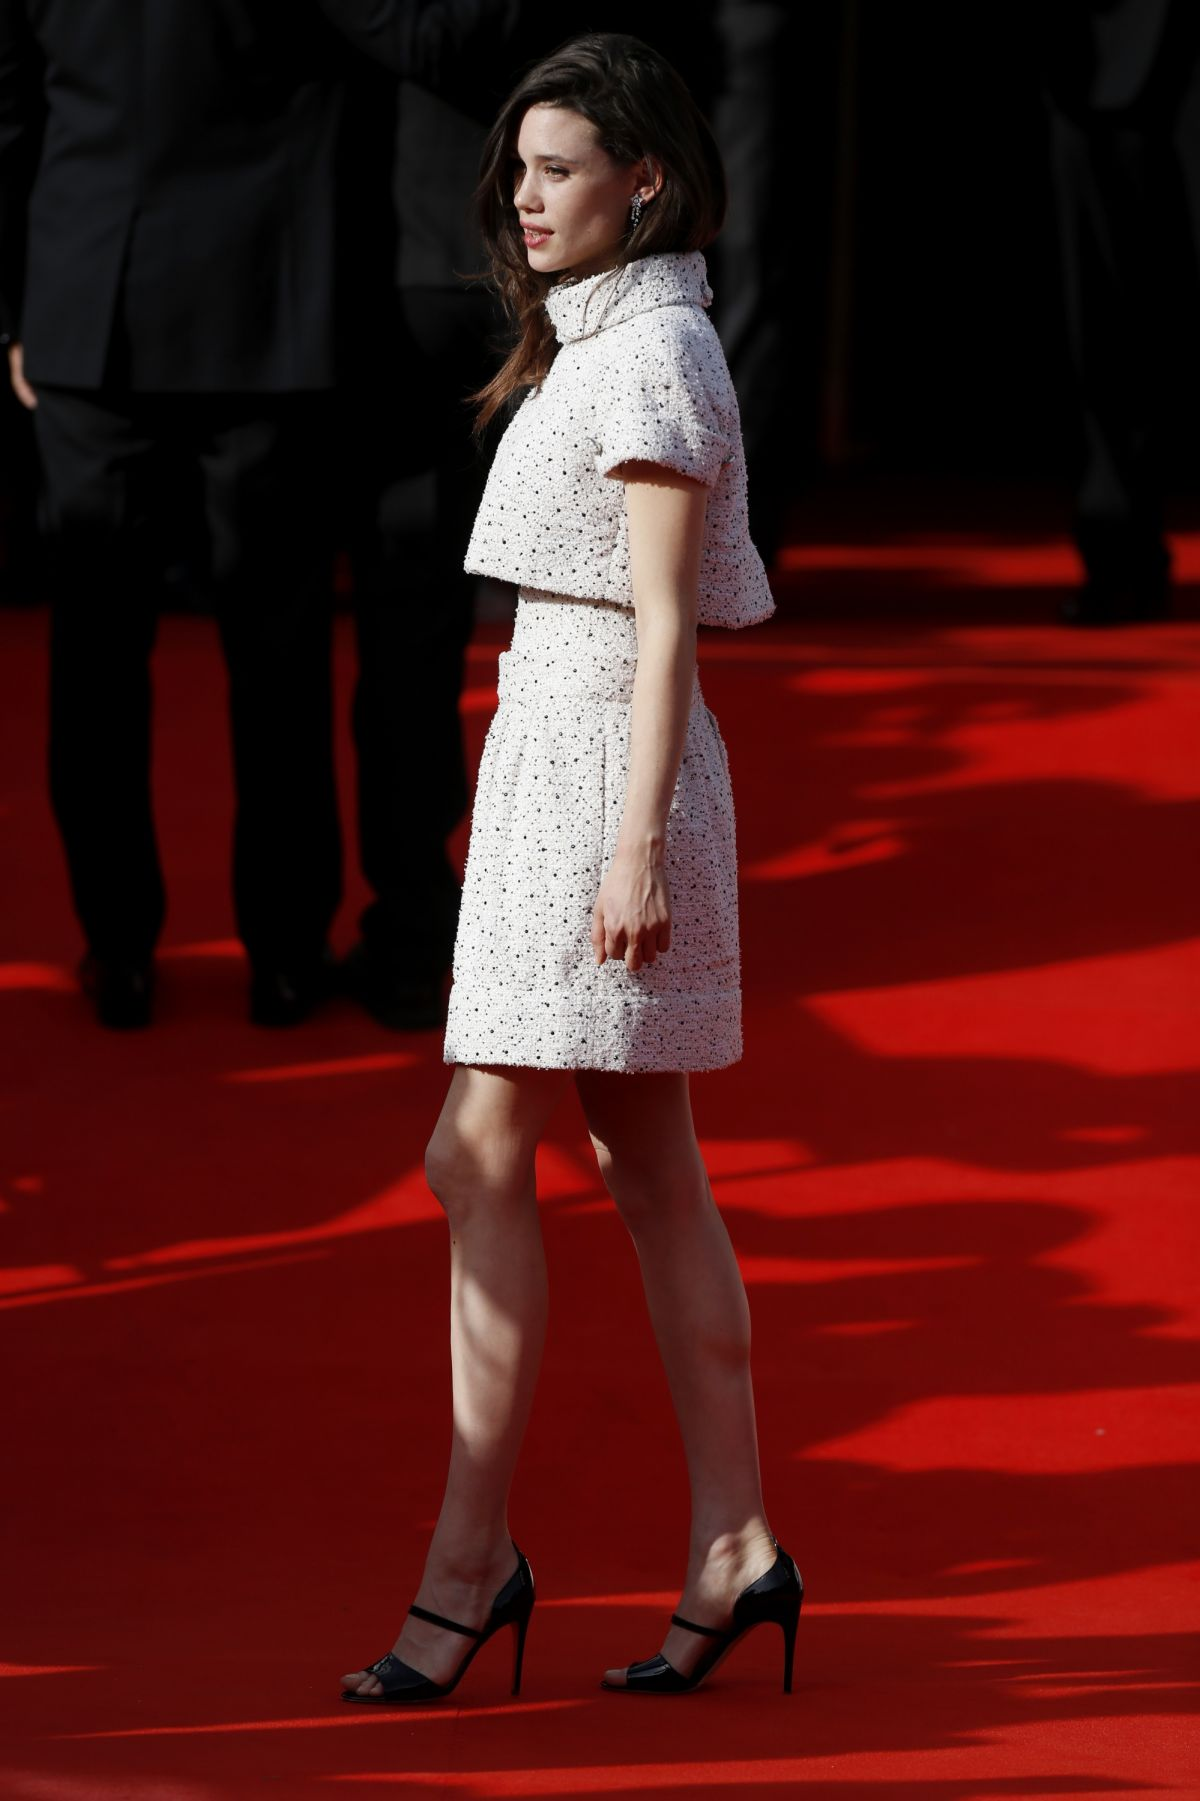 ASTRID BERGES-FRISBEY at Karlovy Vary International Film Festival